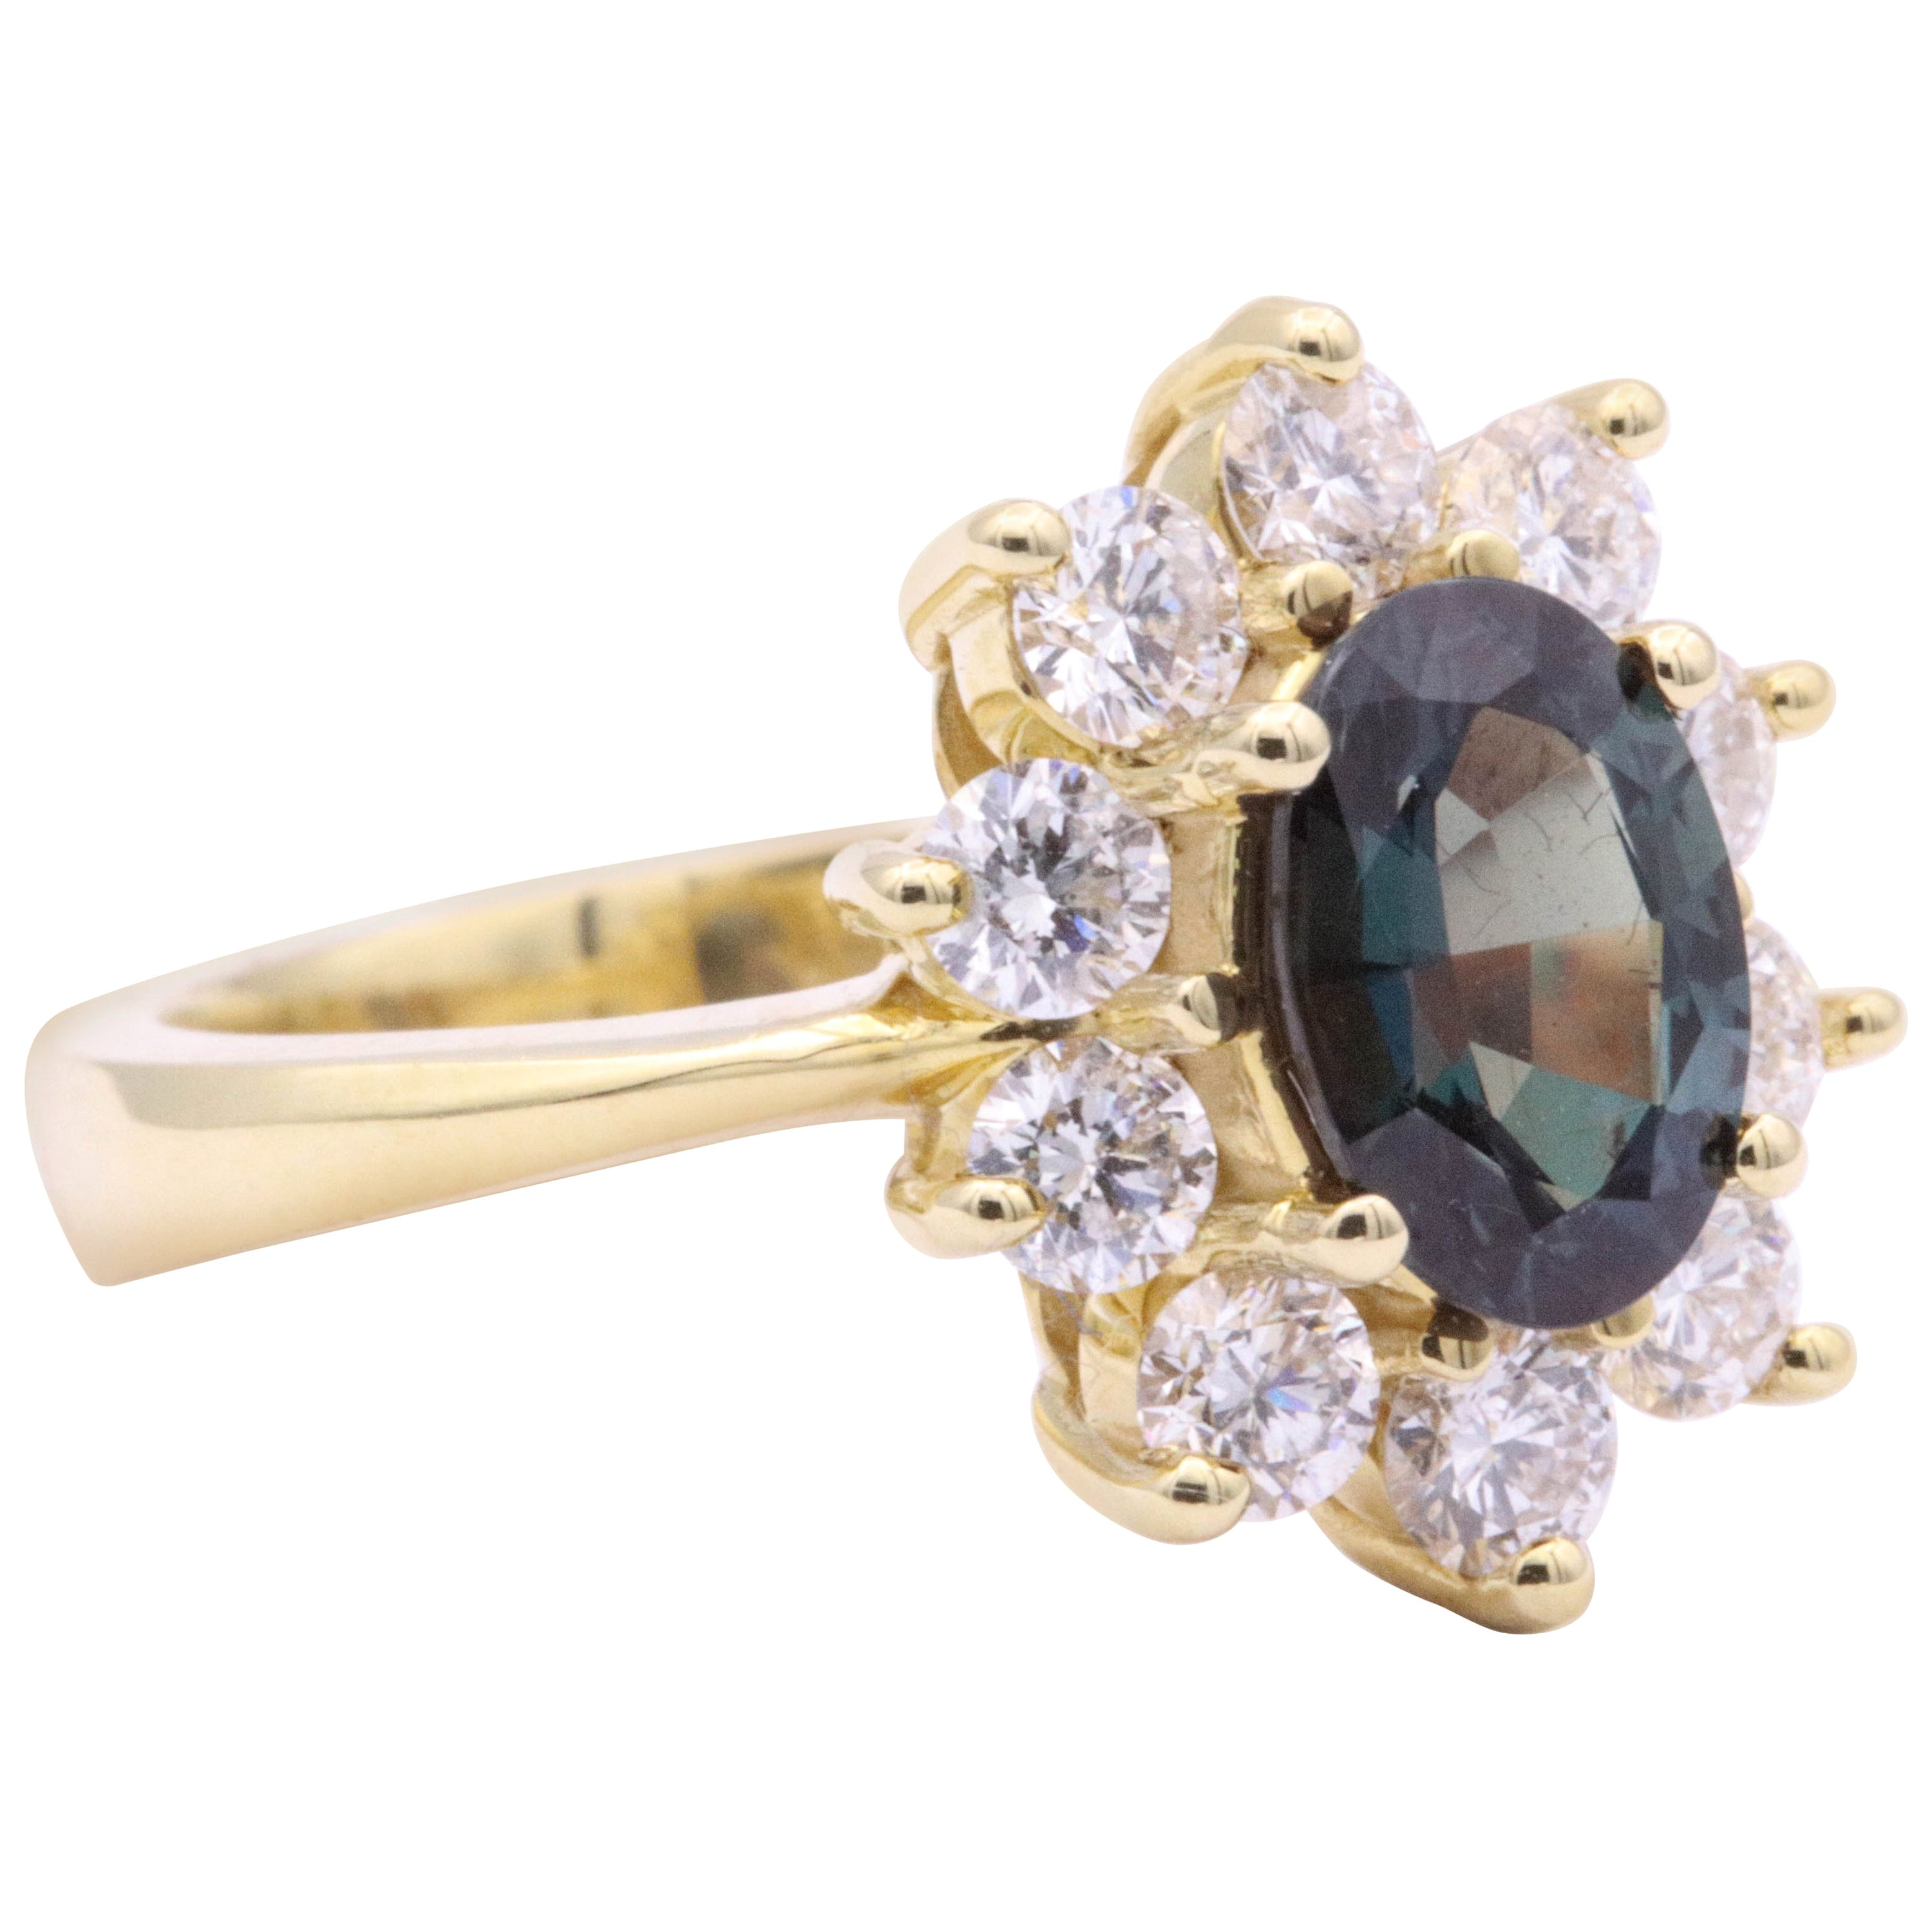 HARBOR D. Alexandrite Lady Diana Ring with GUB Certificate 2.26 Carat